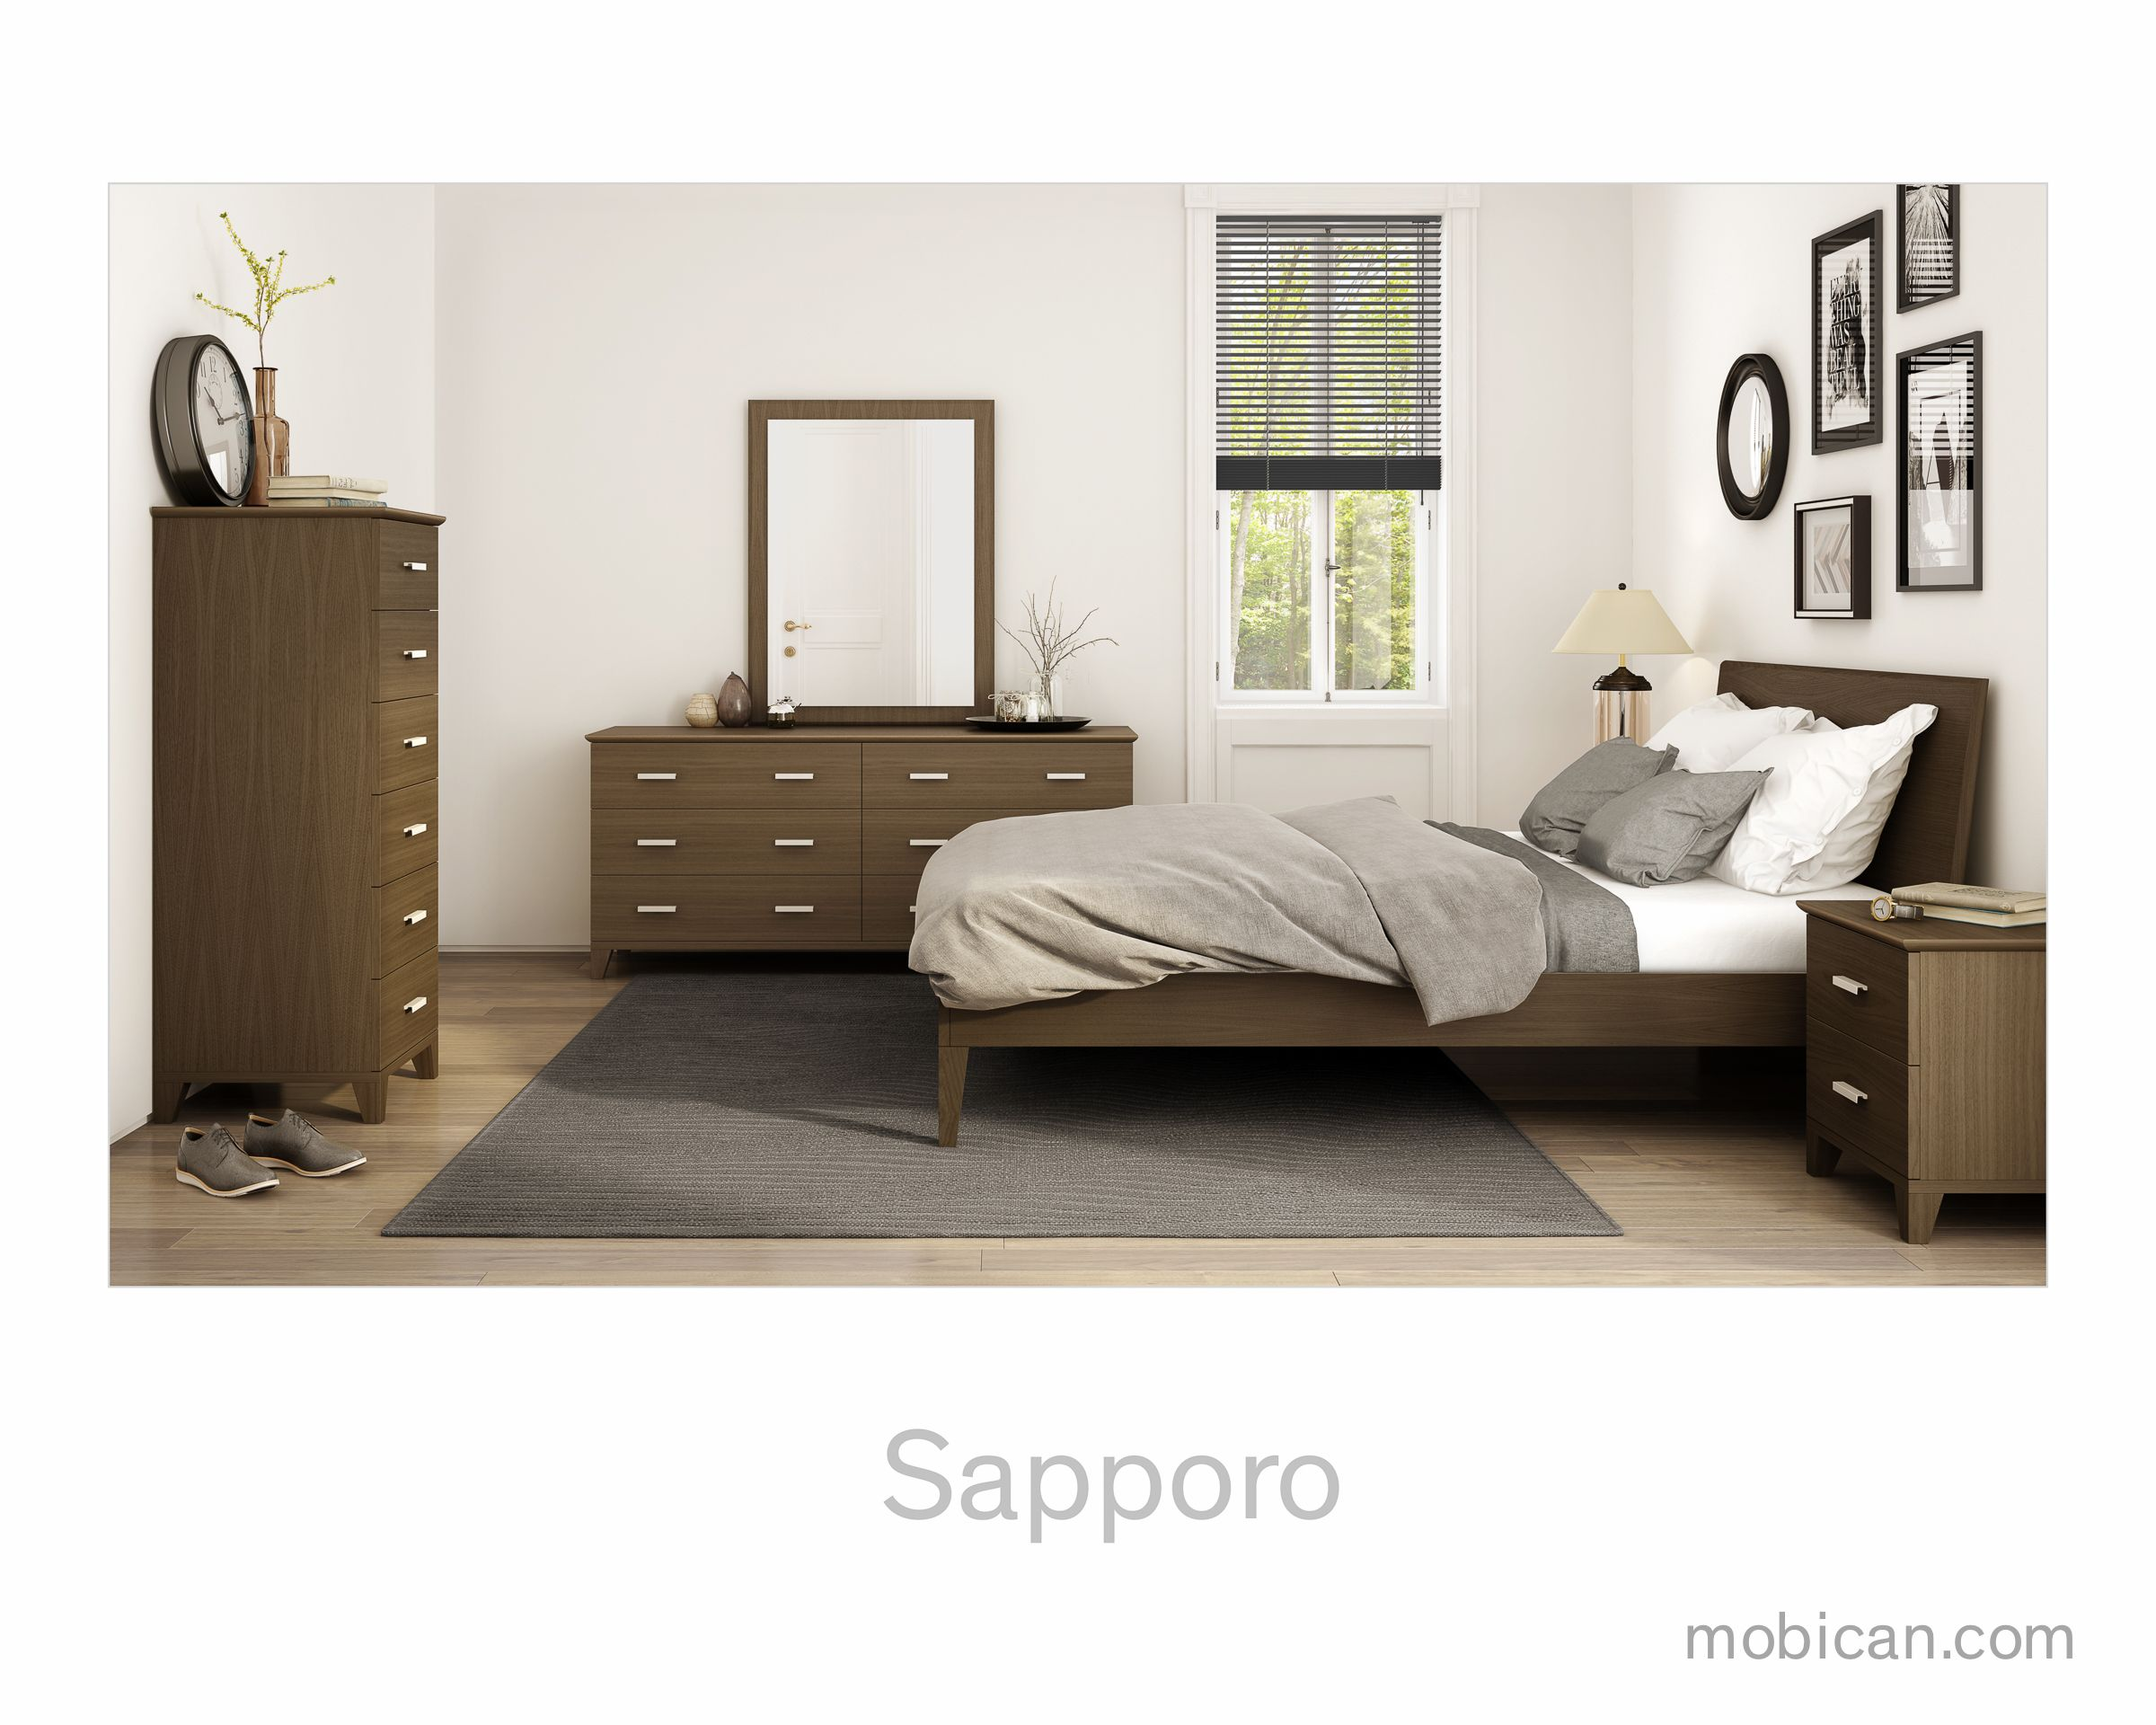 Meubles Mobican Furniture The Sapporo Collection Will Be Shown At The High Point Furniture